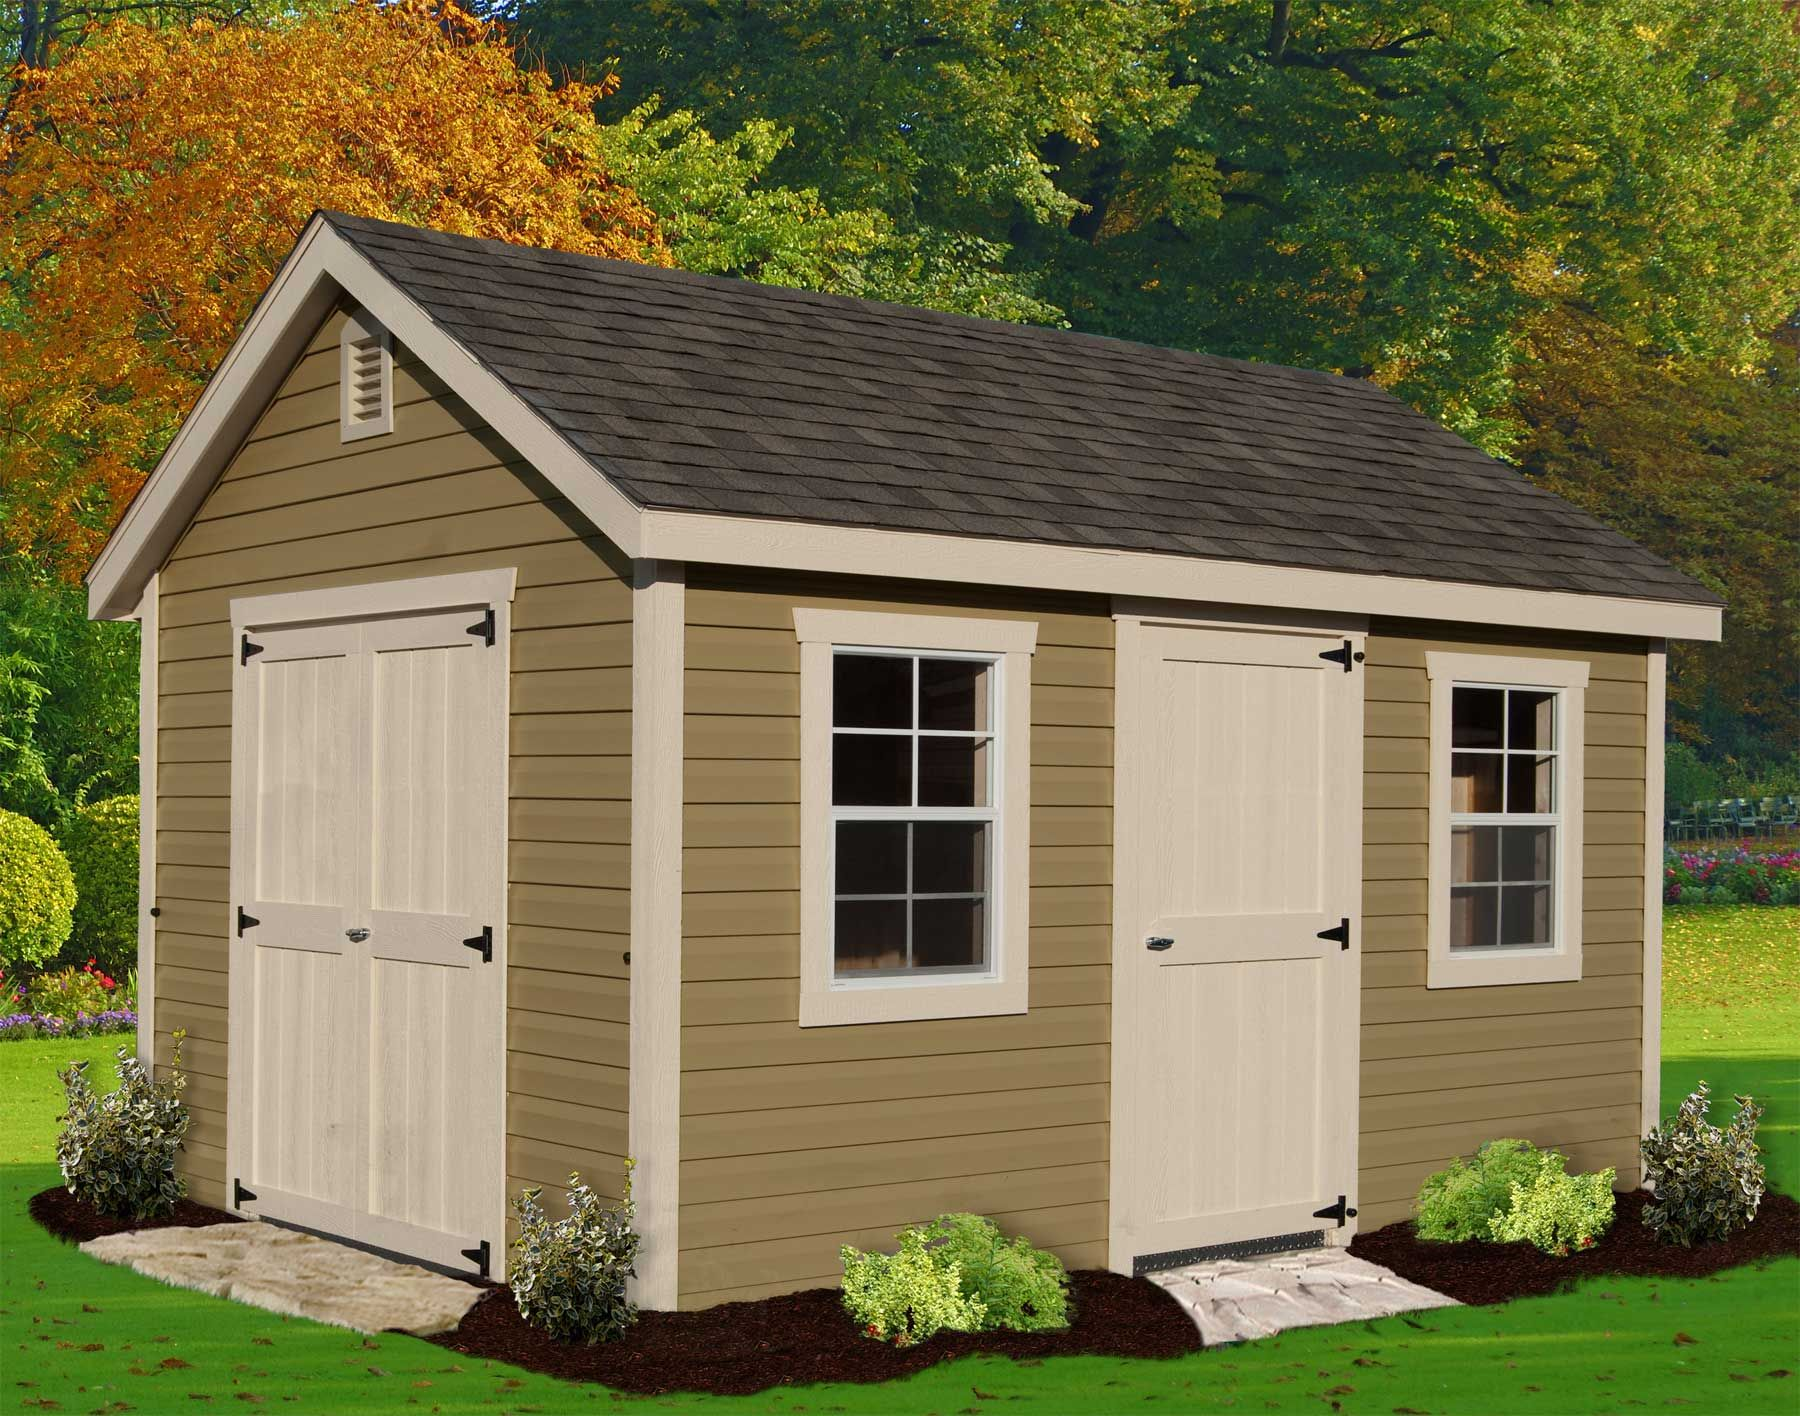 Vinyl Siding Deluxe Estate Sheds Sheds By Siding Shed Landscaping Backyard Storage Sheds Shed Plans 12x16